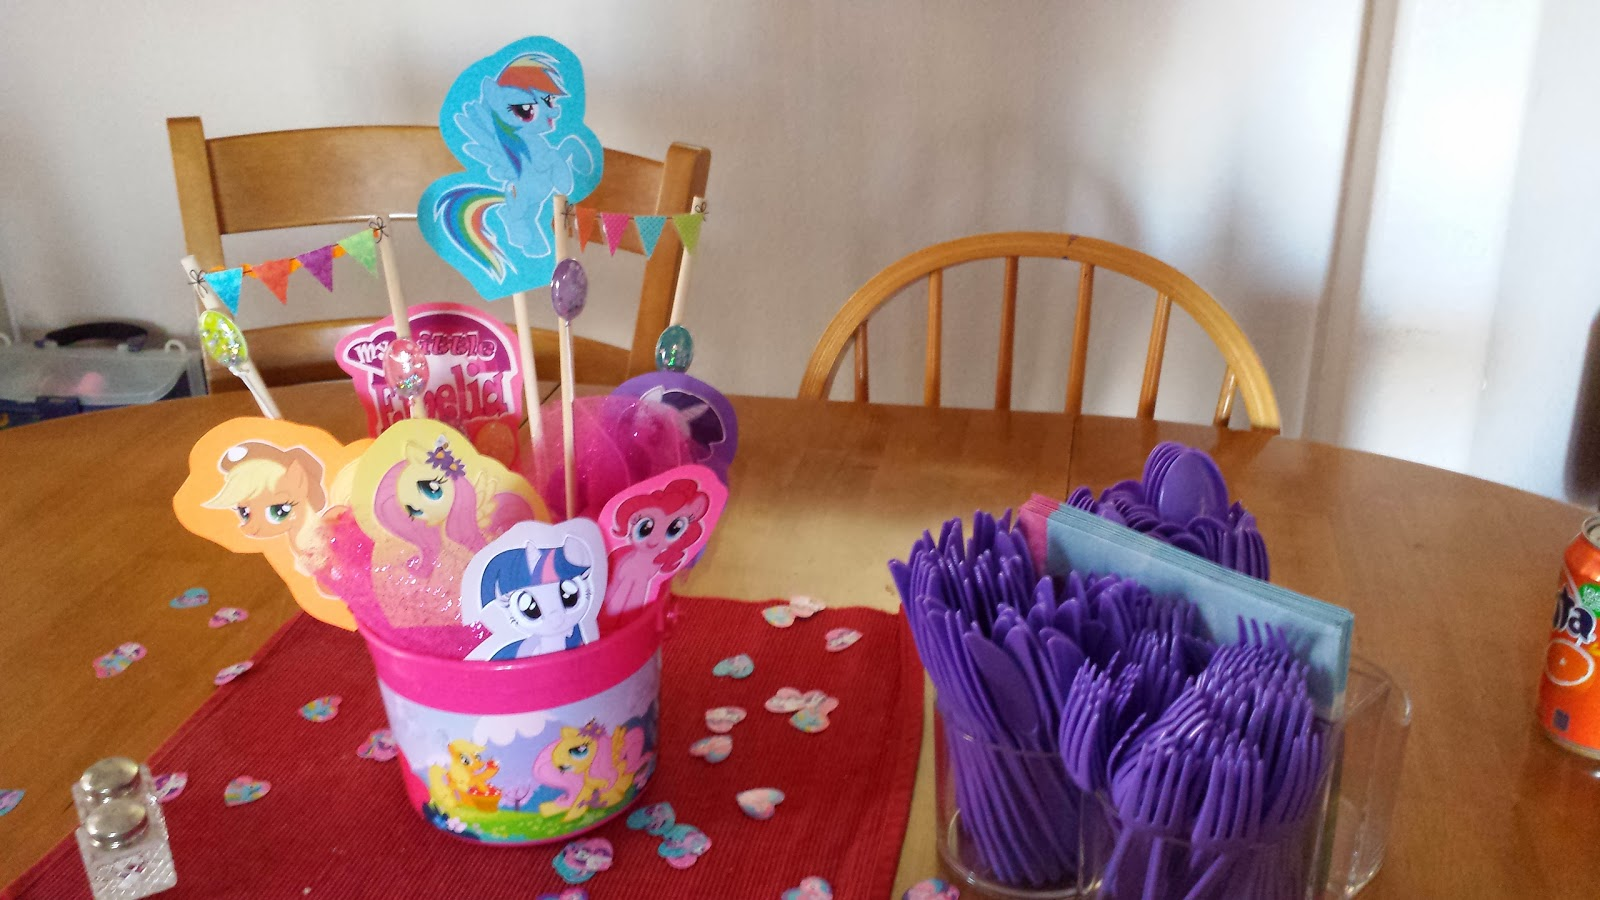 My little pony birthday party crafts - One I Used A Mlp Bucket Available At Partycity Com The Other Items Are Photos That I Printed Off The Internet And Cut Out And Matted Then Added Some